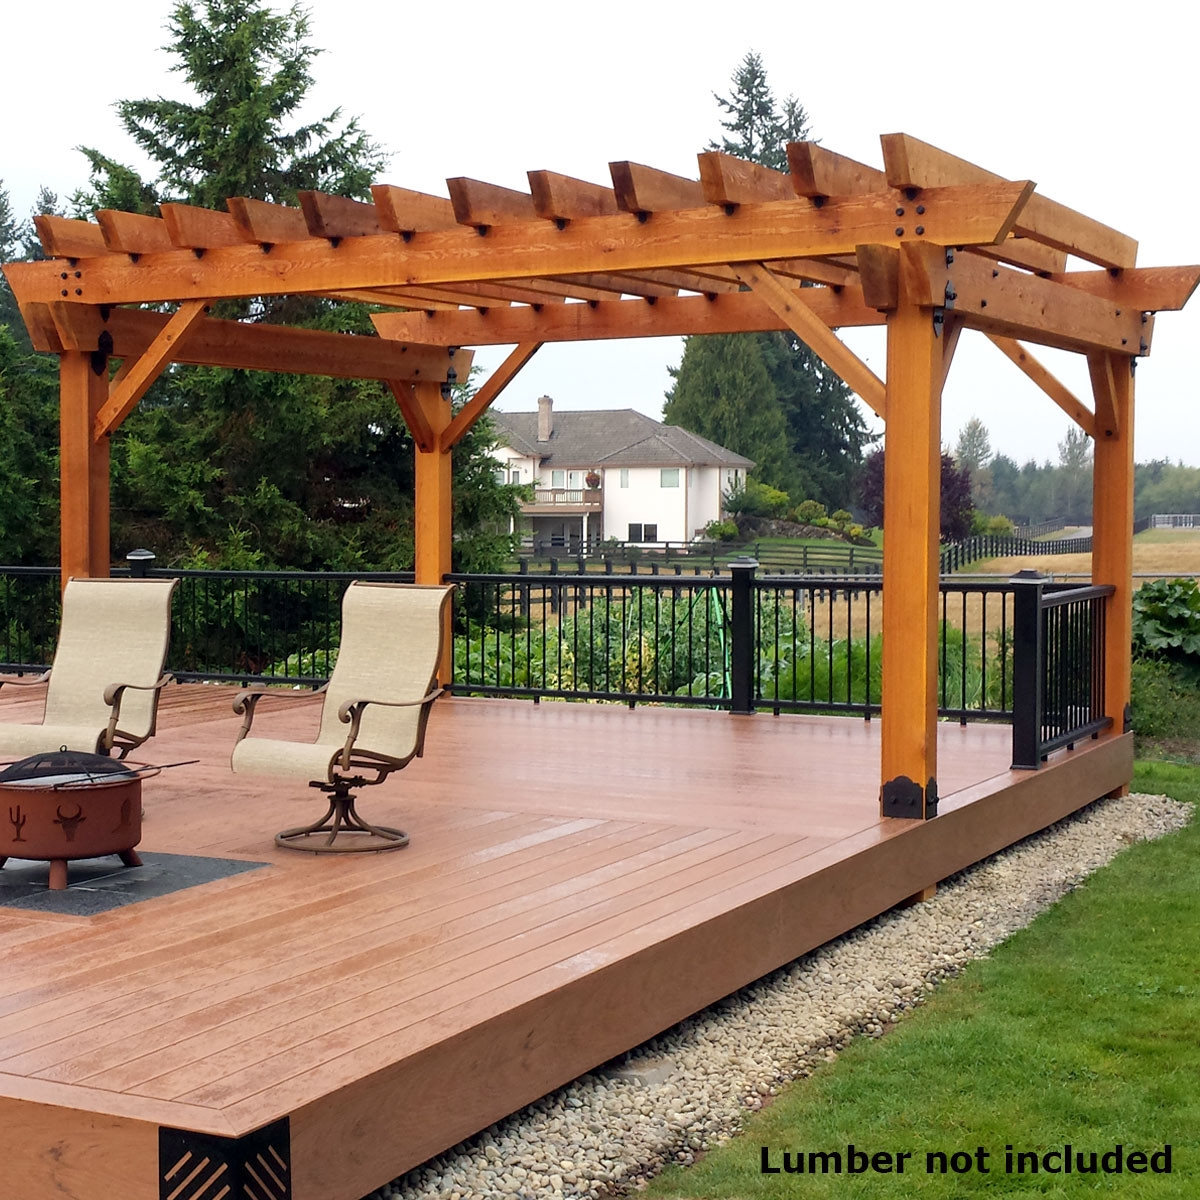 ozco project kit deck pergola with 6x6 posts laredo sunset